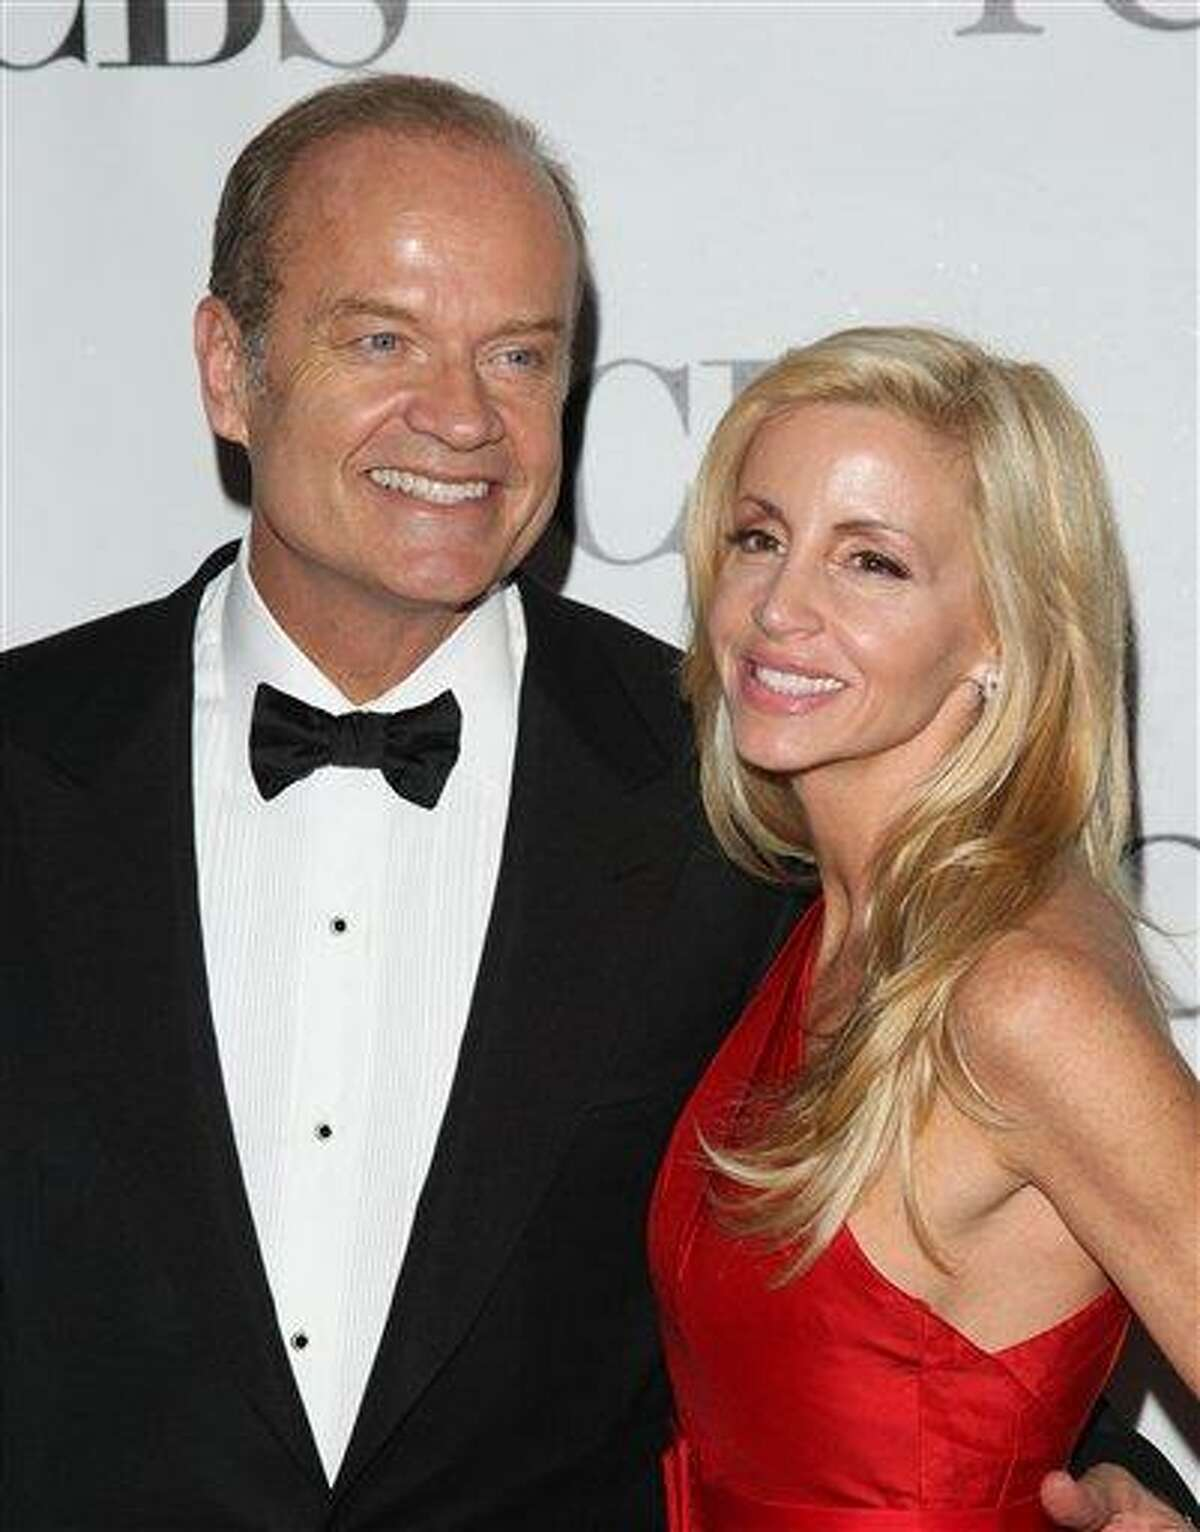 FILE - In this June 13, 2010 file photo, Kelsey Grammer and his wife Camille Grammer arrive at the 61st Annual Tony Awards in New York. (AP Photo/Peter Kramer, file)